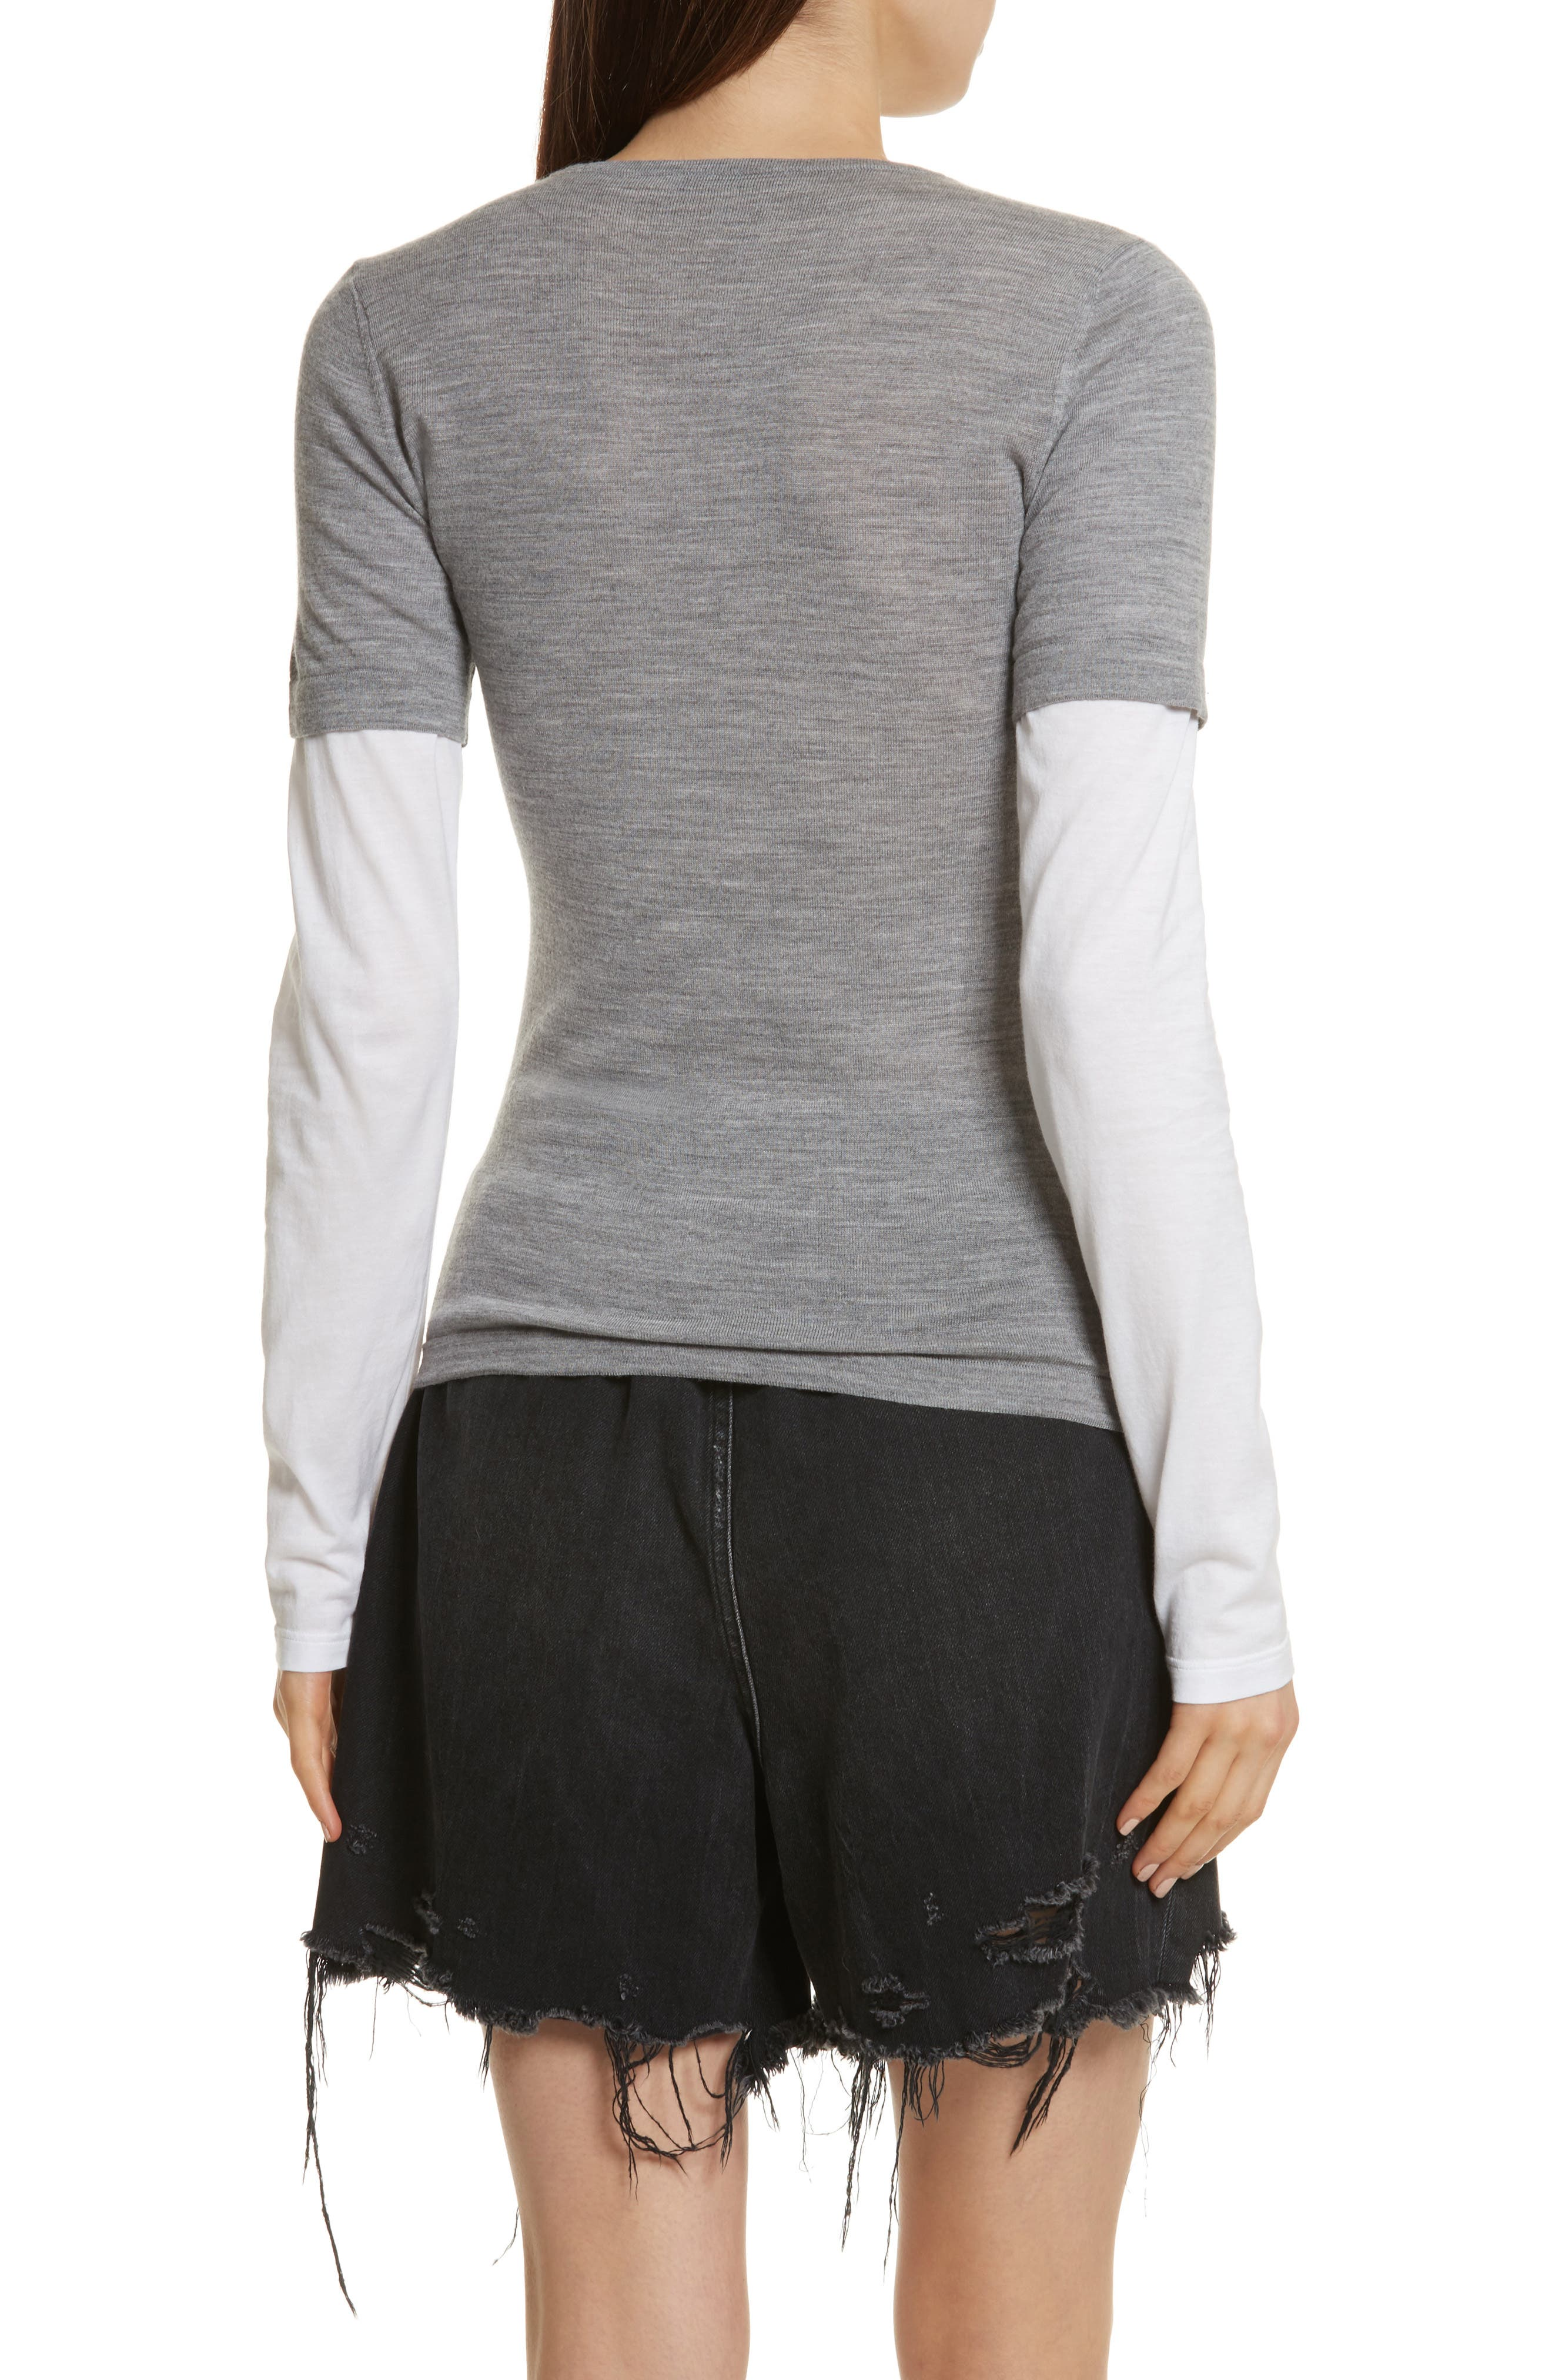 Alternate Image 2  - T by Alexander Wang Knit Merino Wool Layered Top